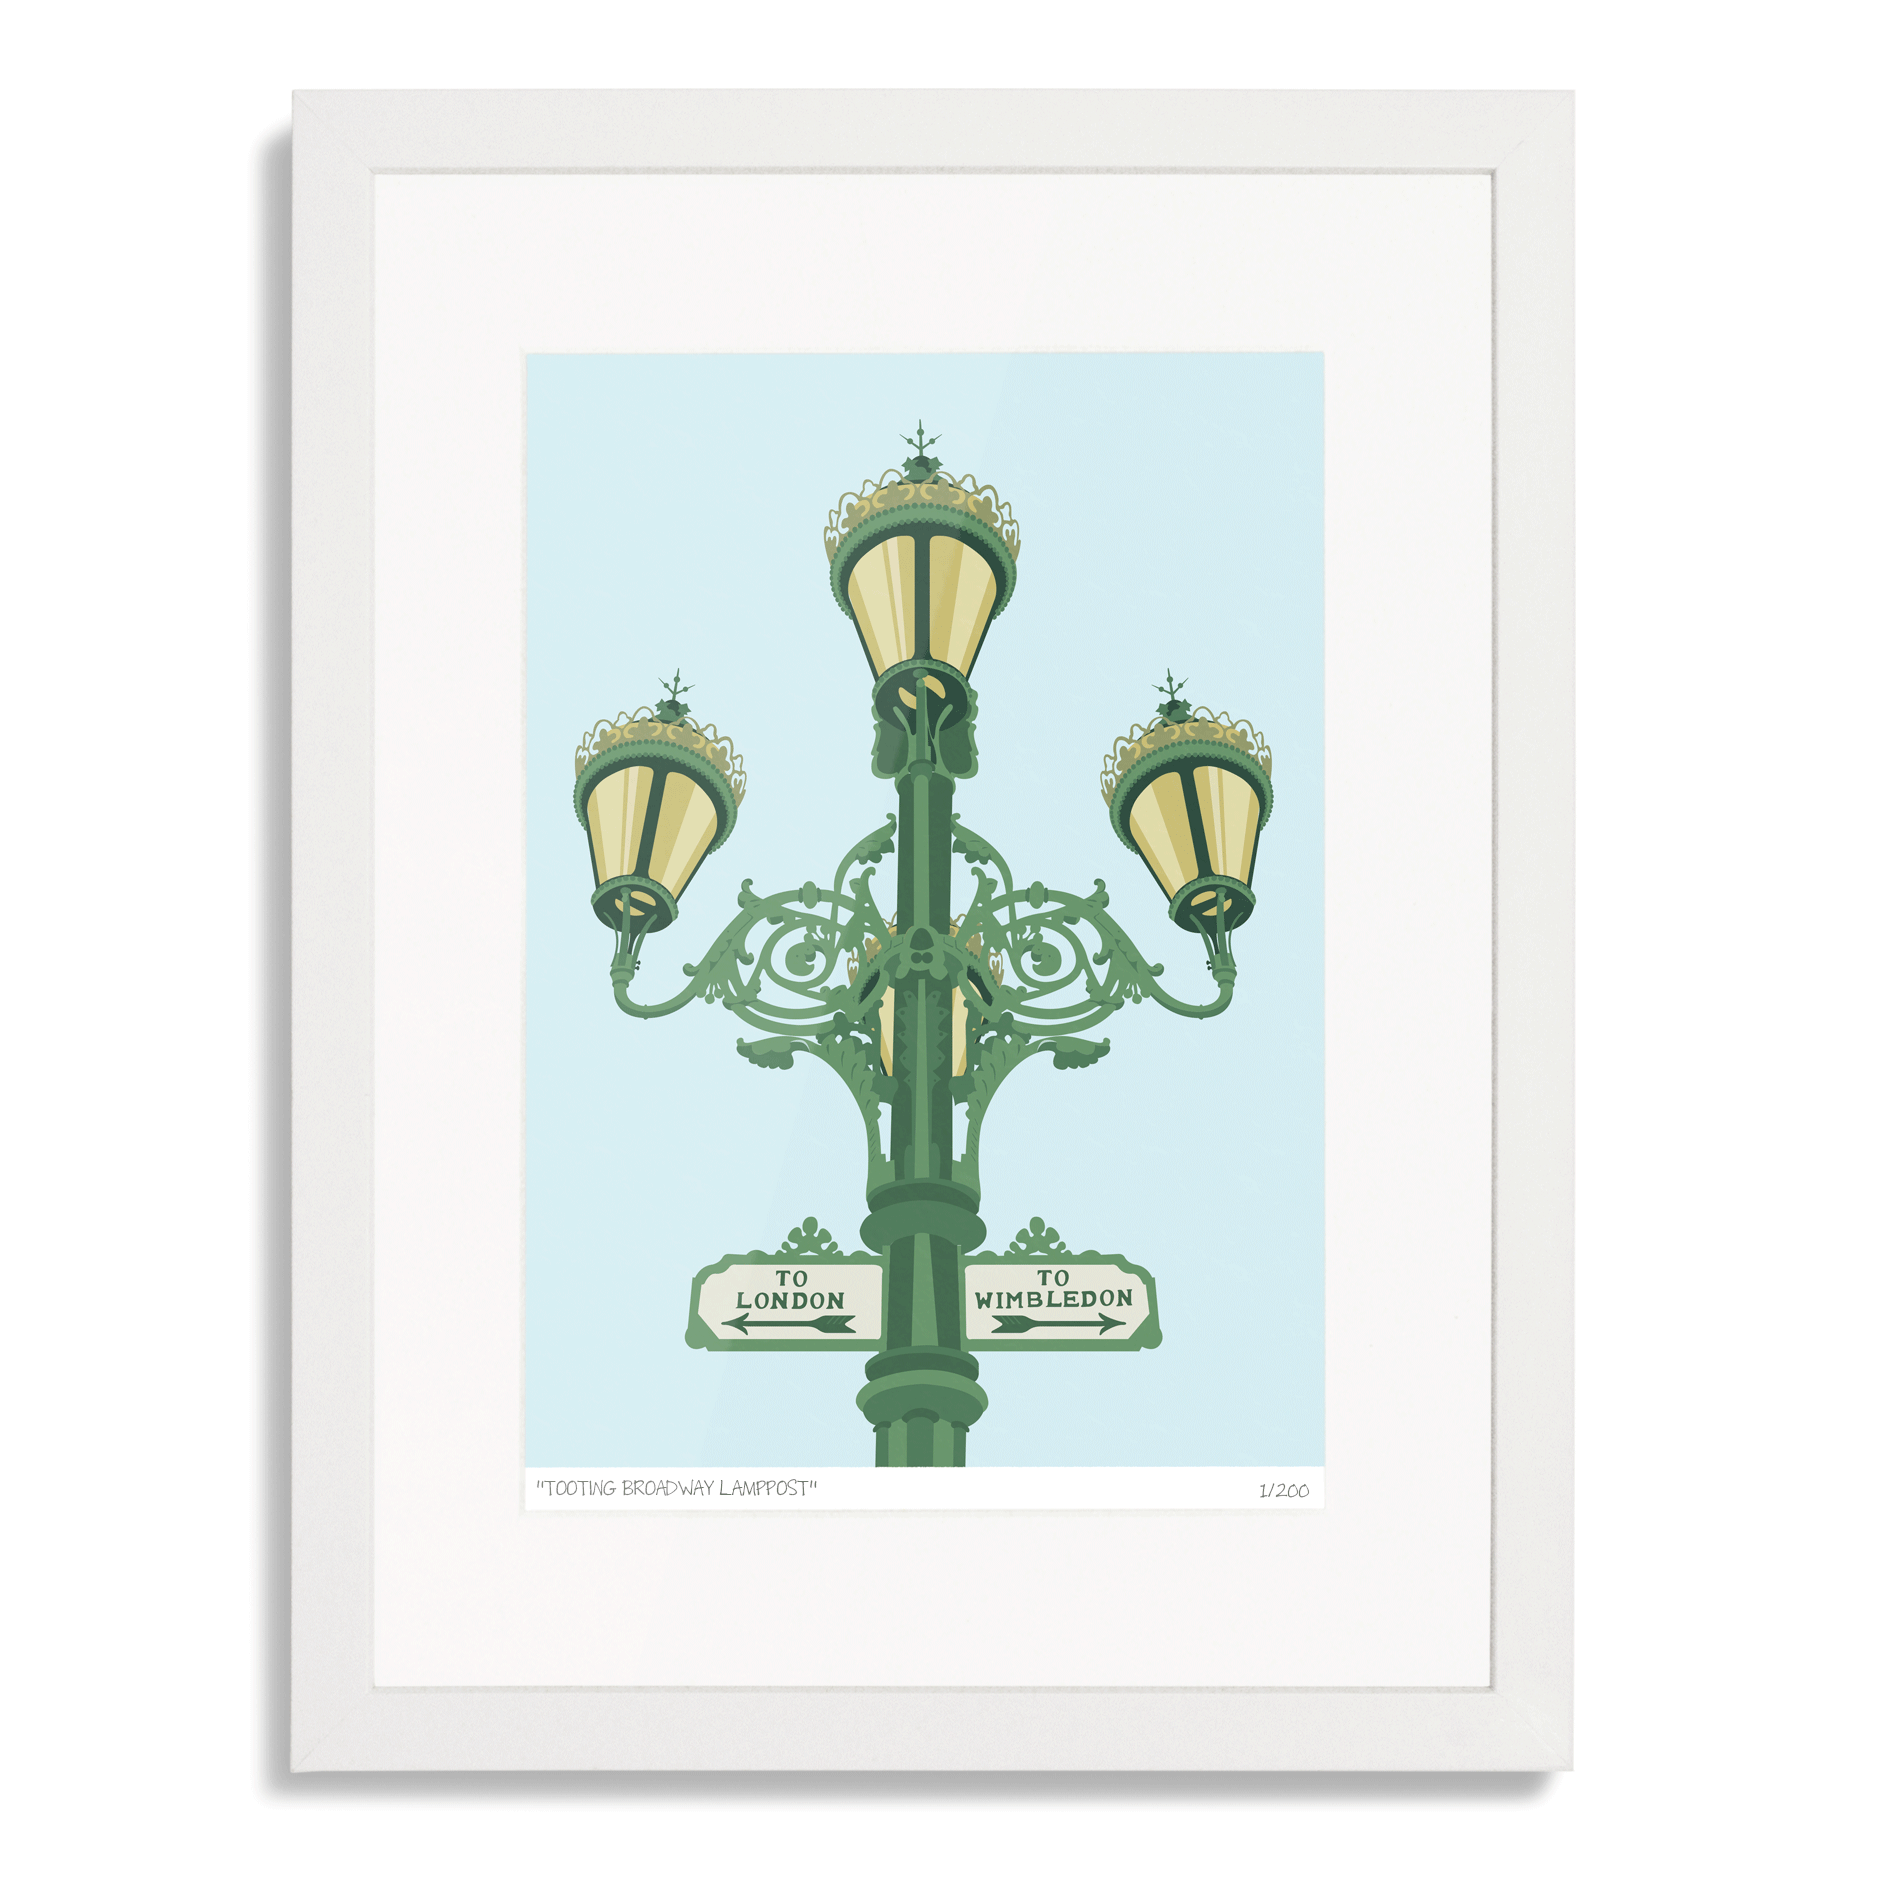 This limited edition print of the Tooting Broadway Lamppost is a celebration of the structure. The print is limited to just 200 copies, and is hand-titled and numbered.